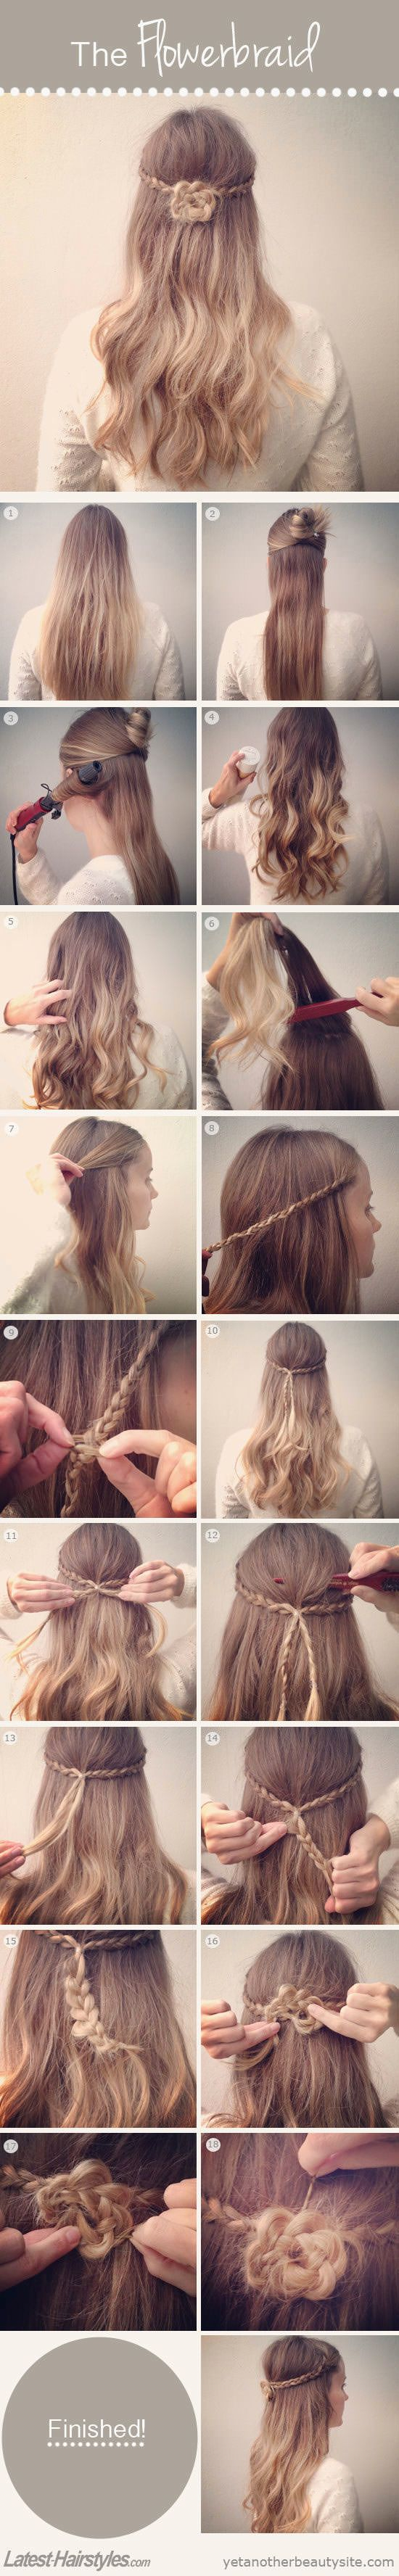 :: flower braid ::